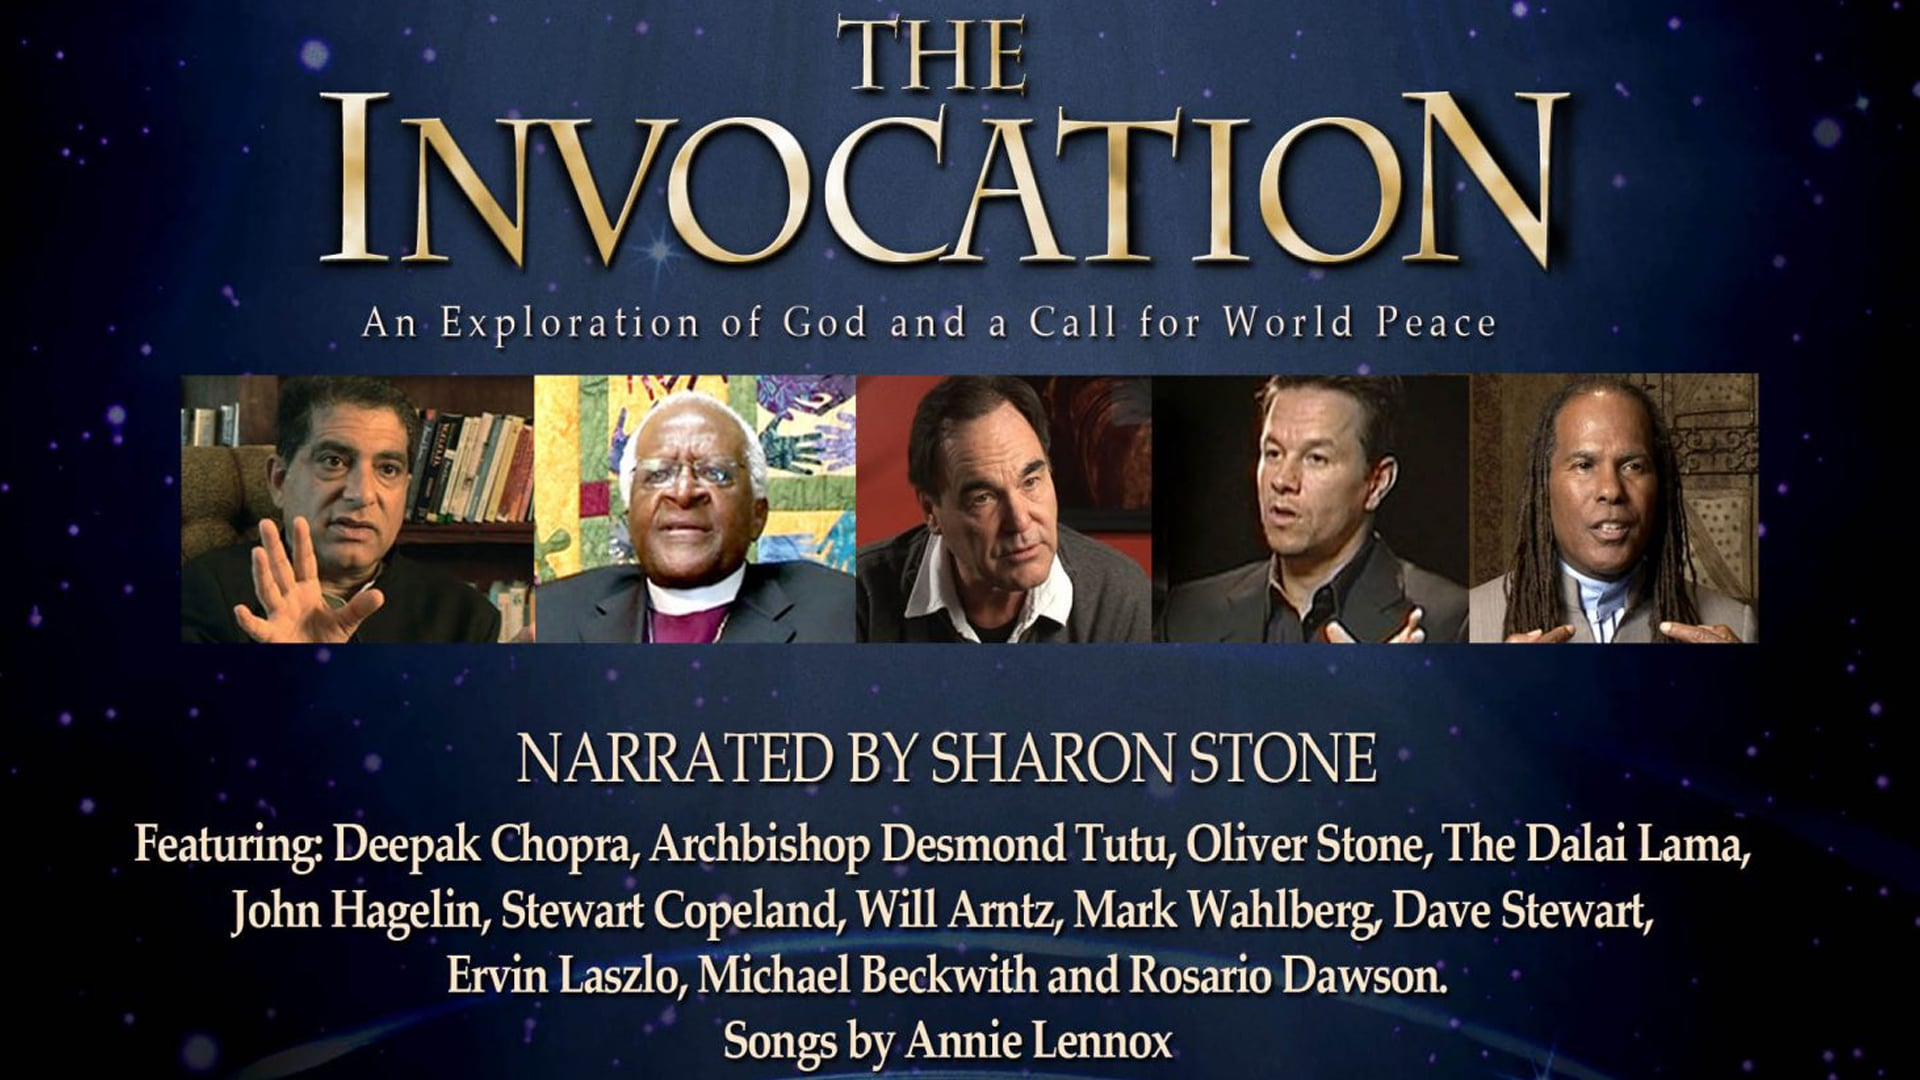 Trailer for THE INVOCATION